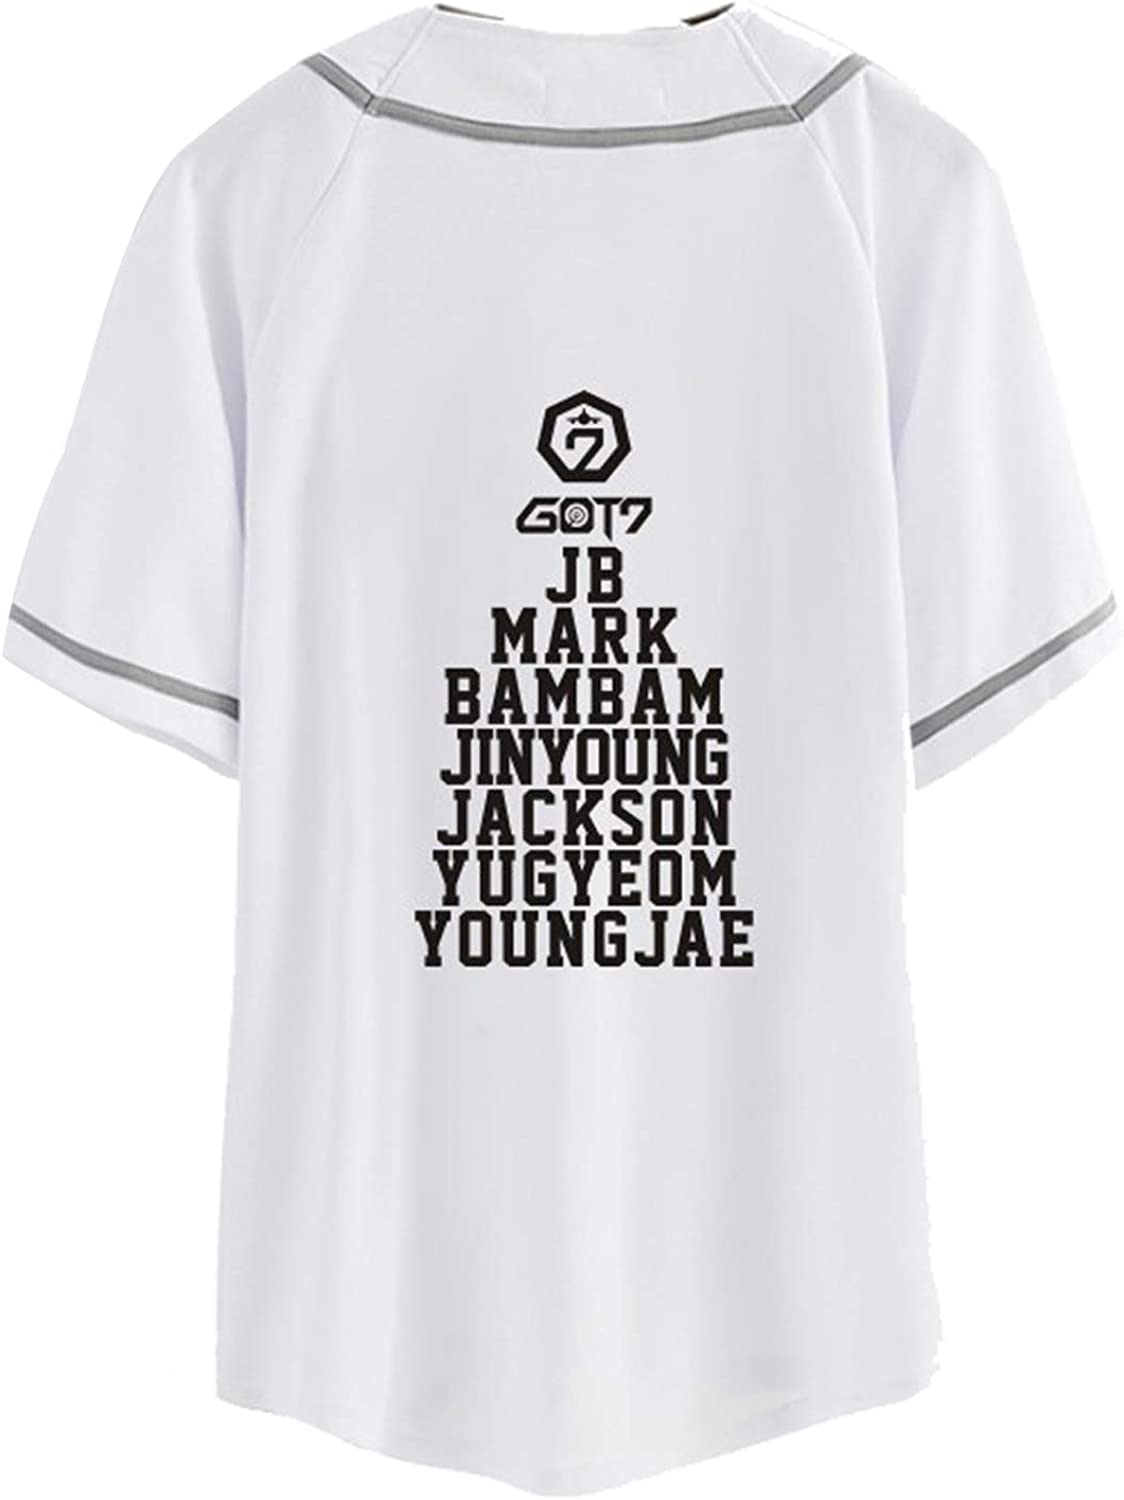 BabyHealthy GOT7 Fly in Seoul Same Style TShirt Bambam Mark Jackson JB JR Tee Shirt